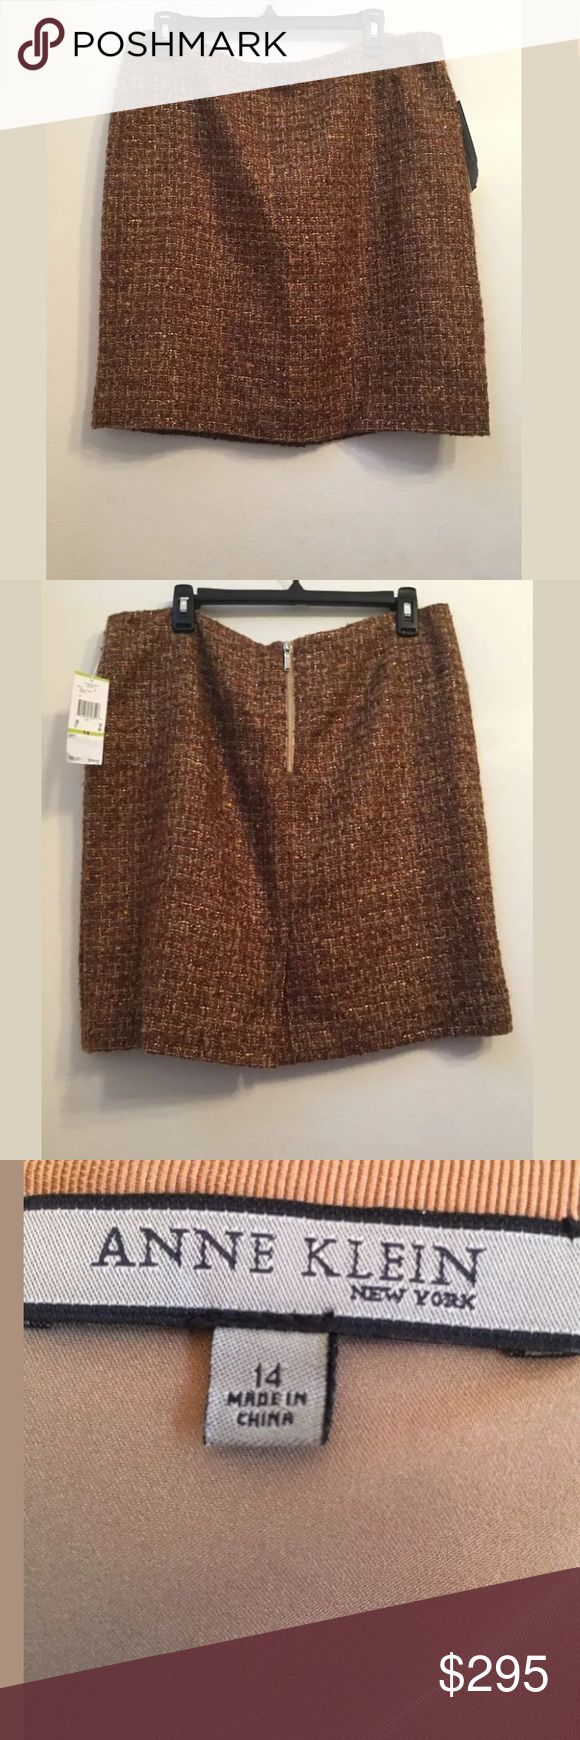 NWT $295 ANNE KLEIN Wool Brown Pencil Skirt 14 NWT $295 ANNE KLEIN Wool Blend C18 Brown Pencil Skirt Size 14.  Super cute and practical!!  Thanks so much for looking!! Anne Klein Skirts Pencil